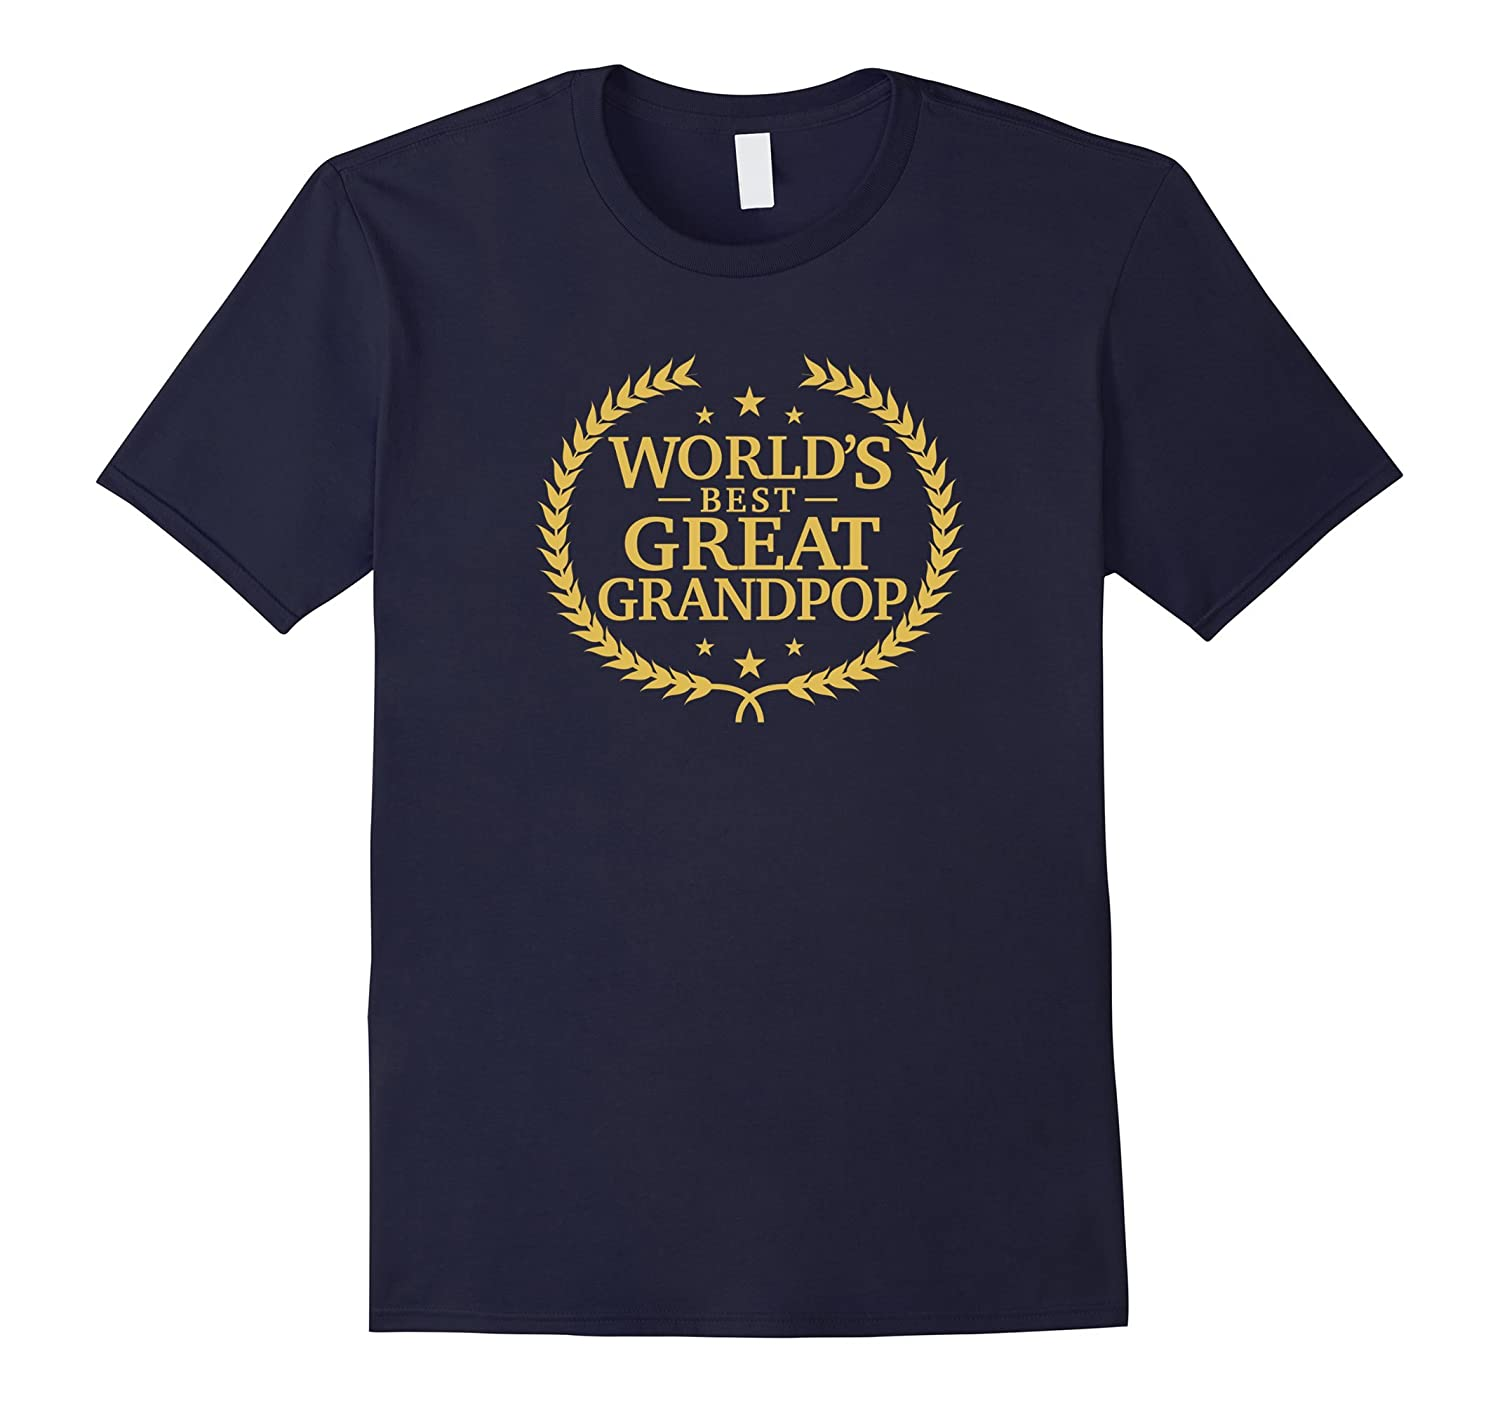 World's Best Great Grandpop T Shirt - Greatest Ever Award-Art